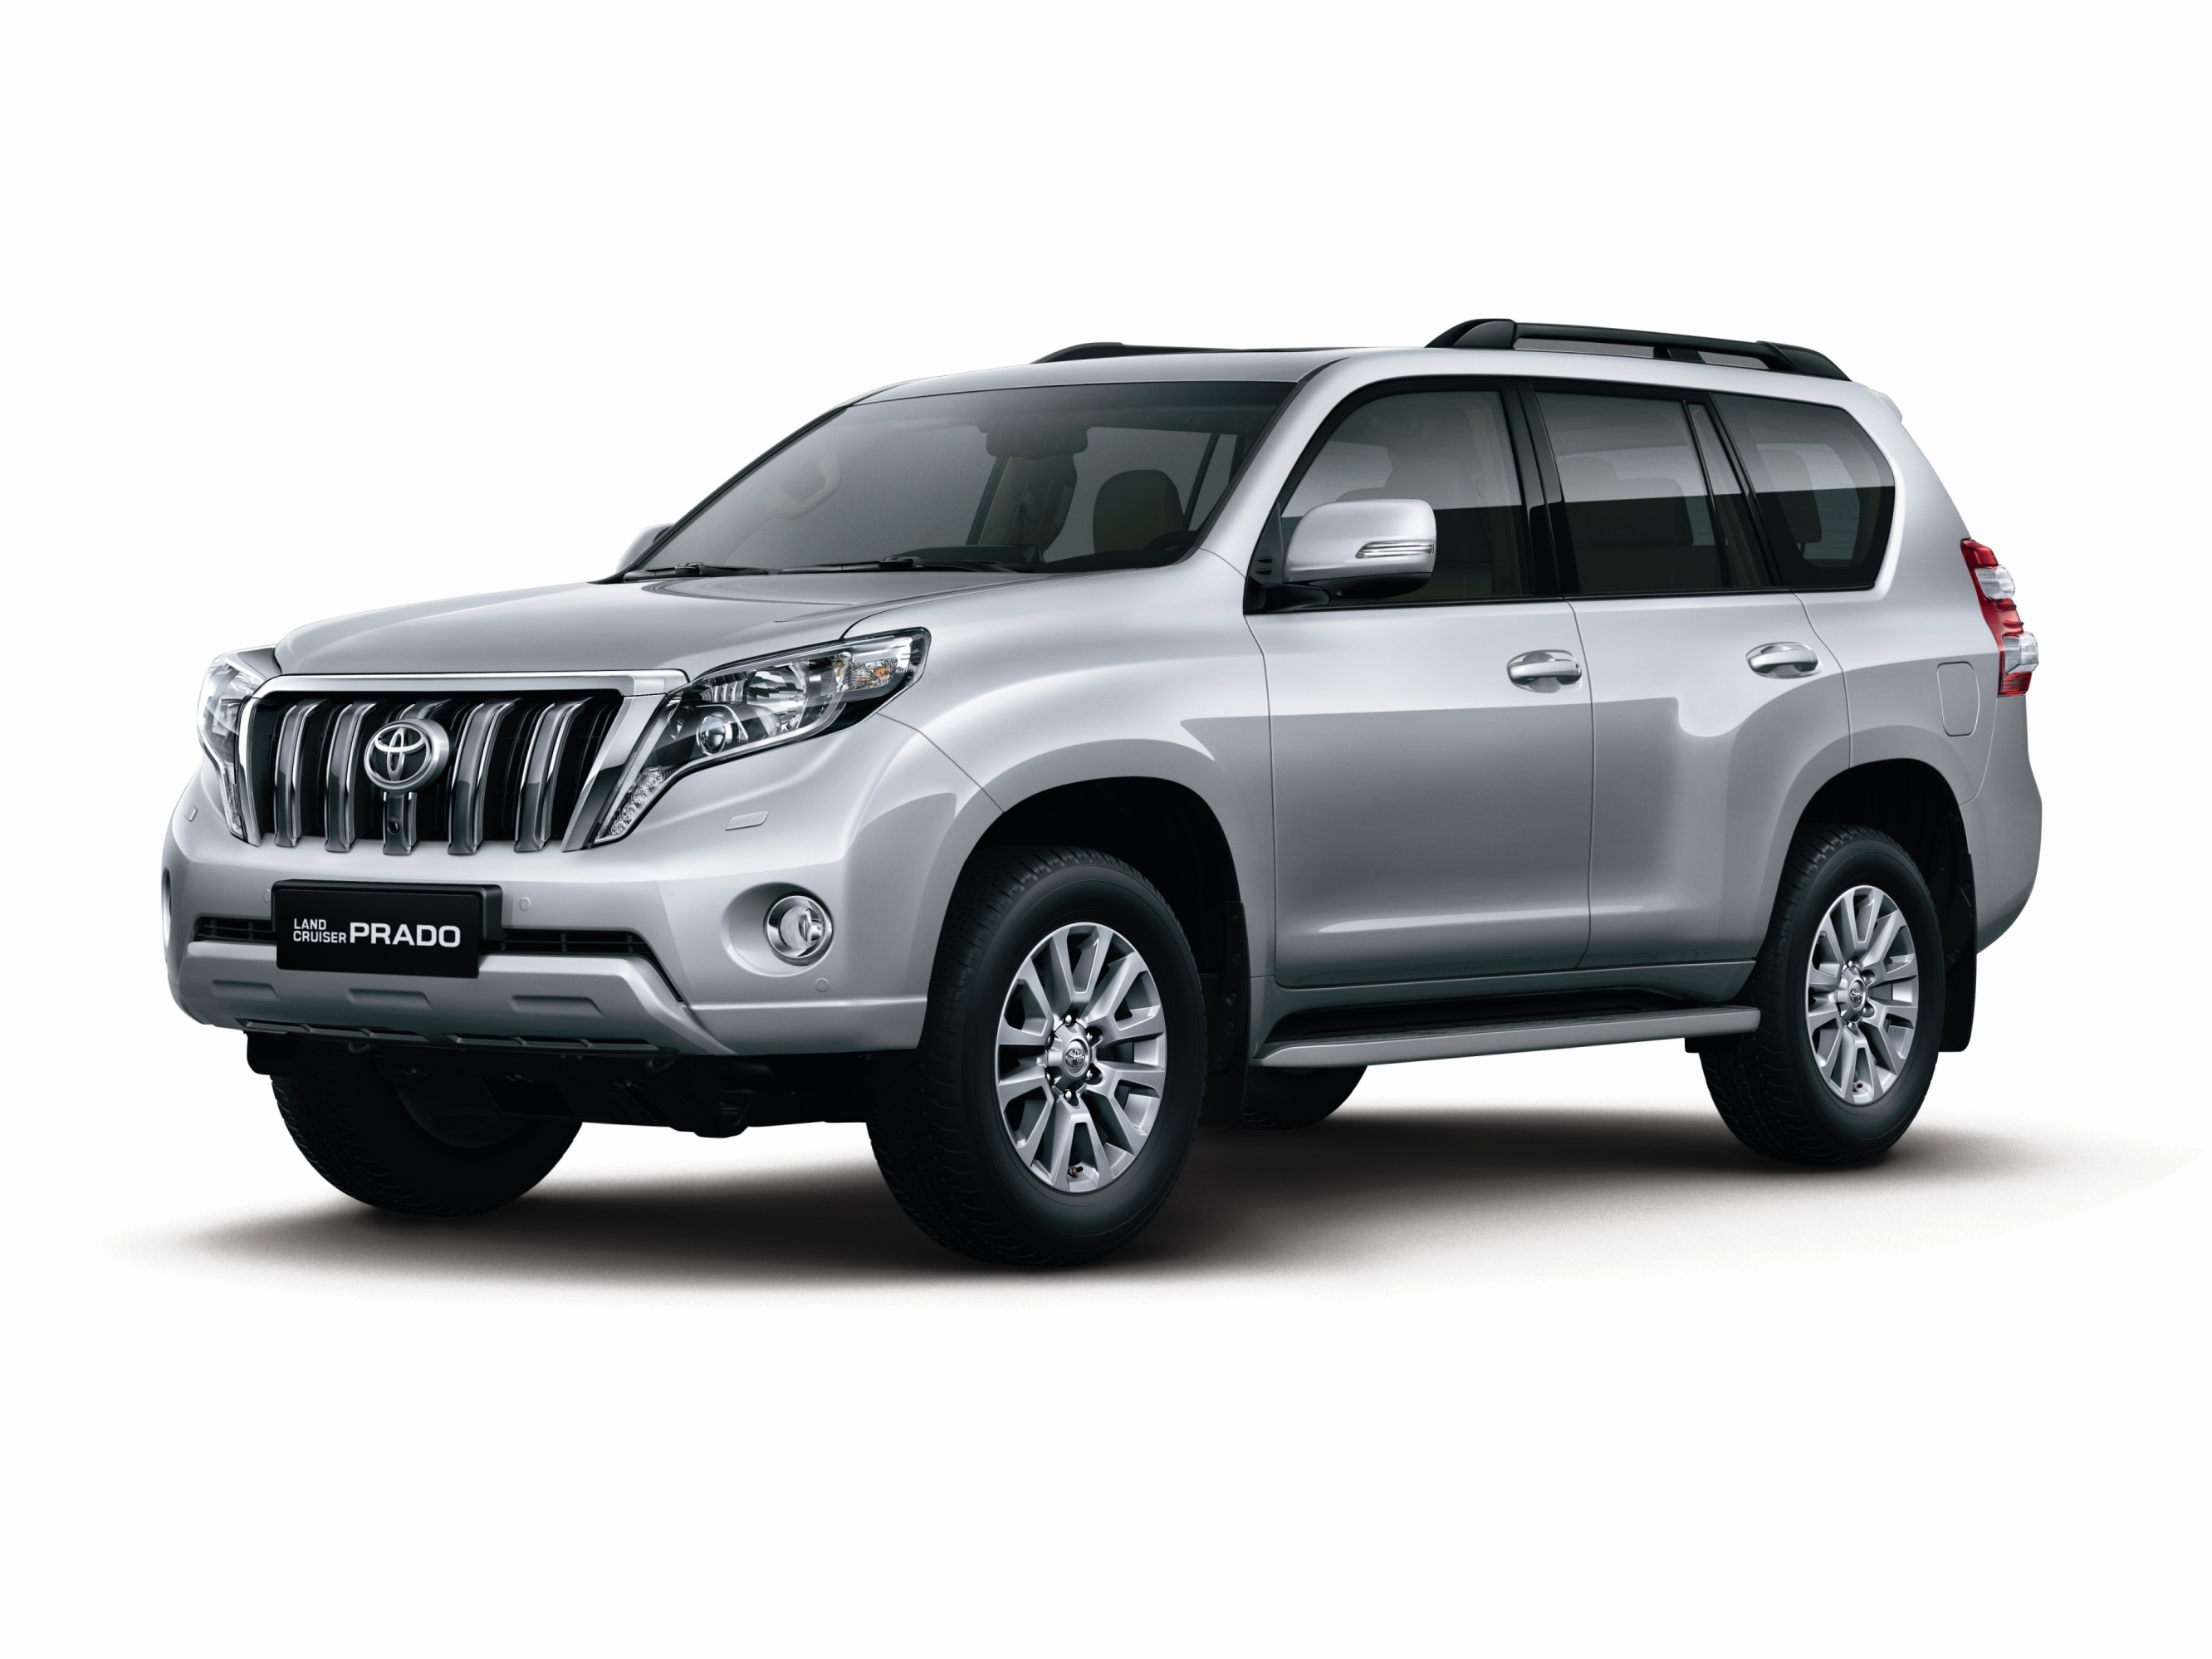 new toyota land cruiser prado launched at rs lakh. Black Bedroom Furniture Sets. Home Design Ideas